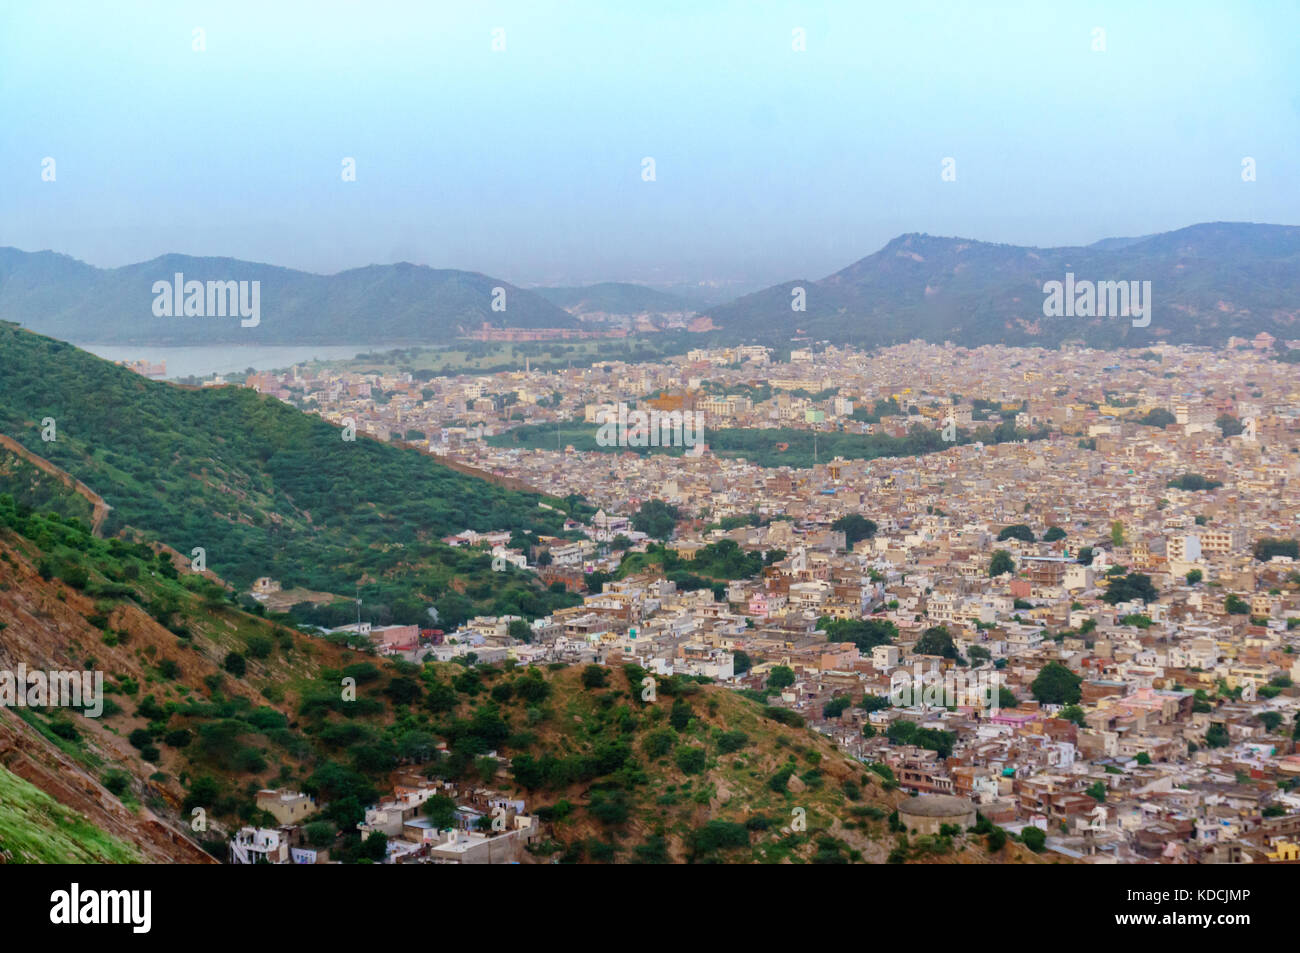 Cityscape of Jaipur city with the bordering aravali hills - Stock Image